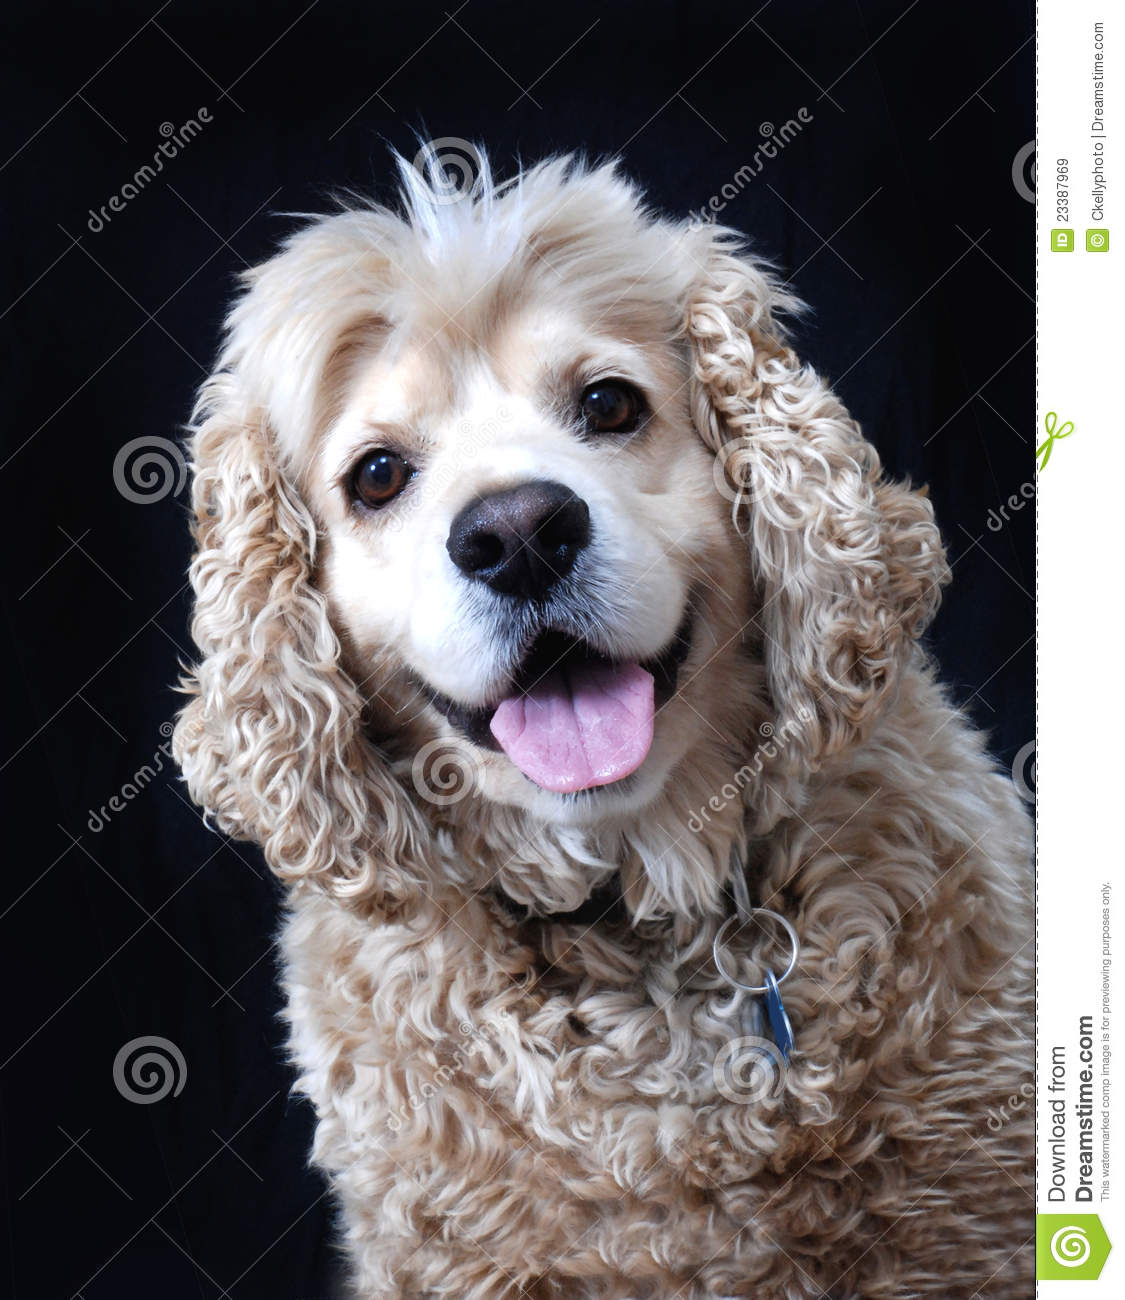 American Cocker Spaniel Dog Fawn Color Stock Image Image Of Fawn